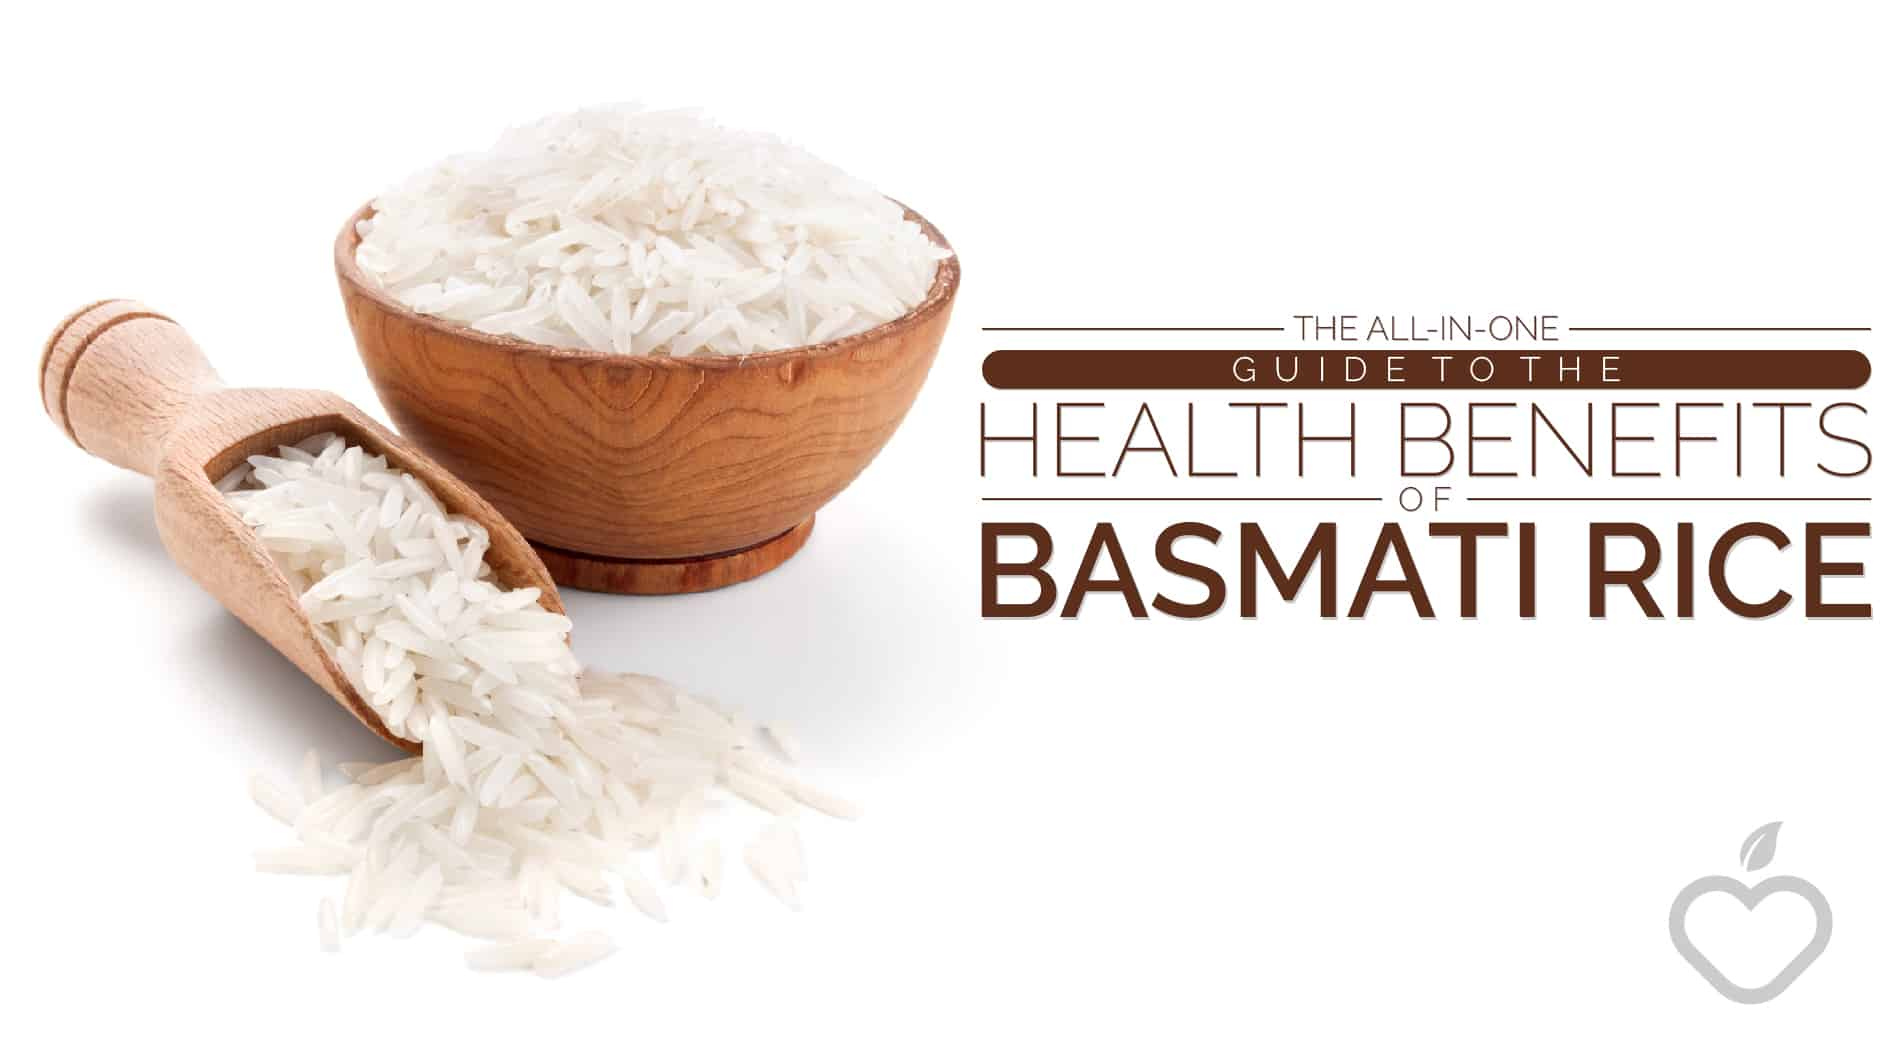 Basmati Rice Image Design 1 - The All-In-One Guide To The Health Benefits Of Basmati Rice